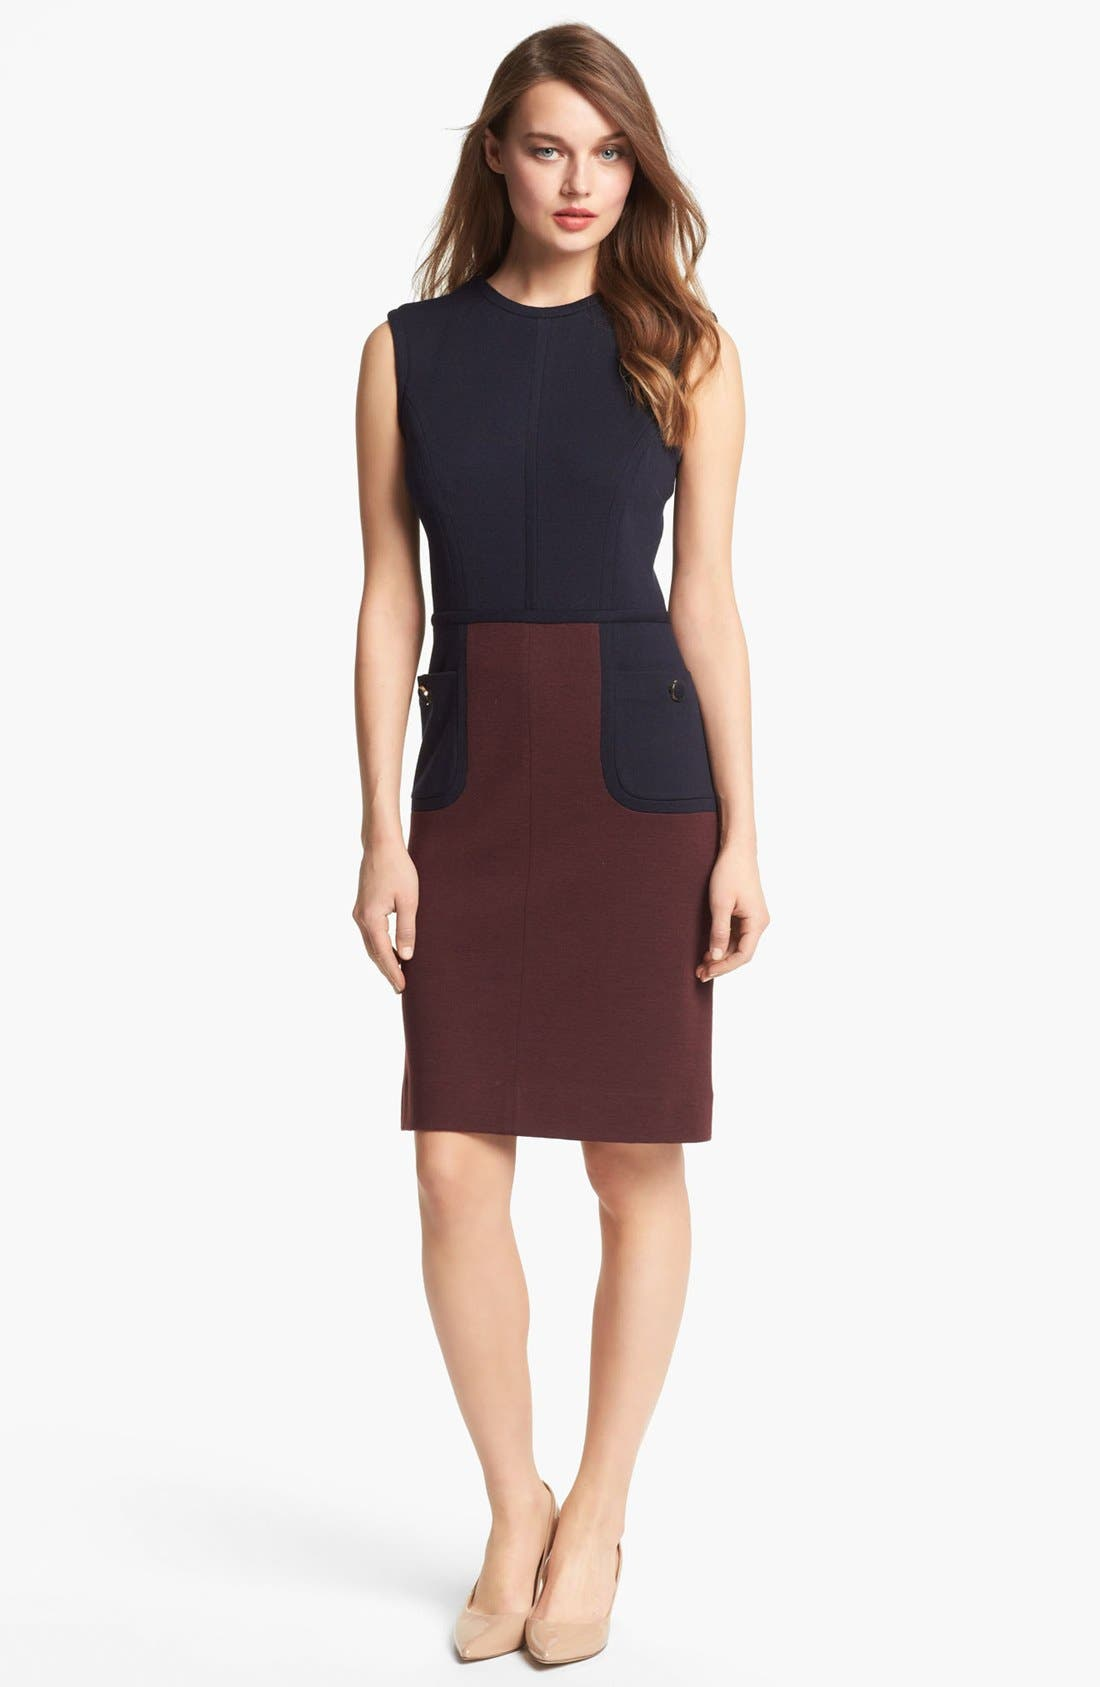 Main Image - Tory Burch 'Brianna' Colorblock Sheath Dress